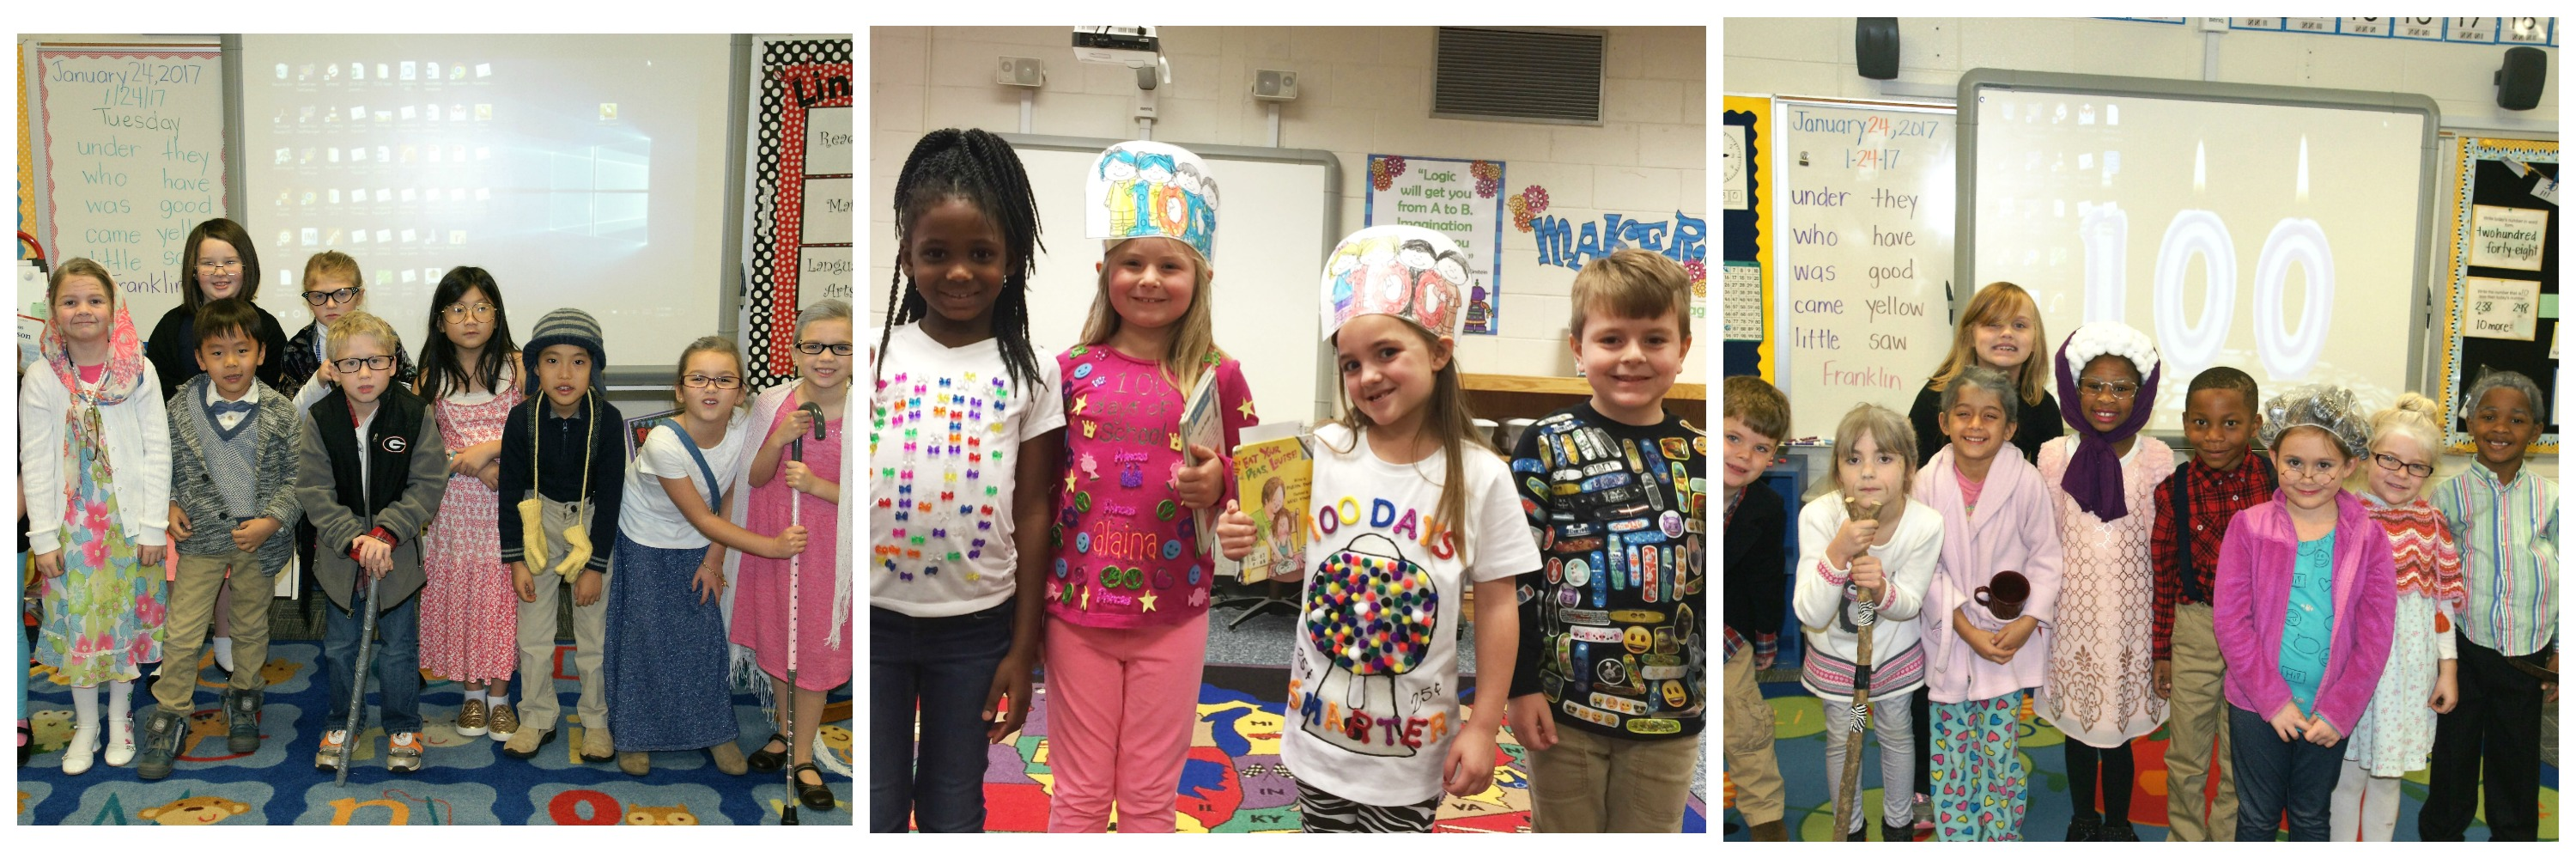 100th Day outfits